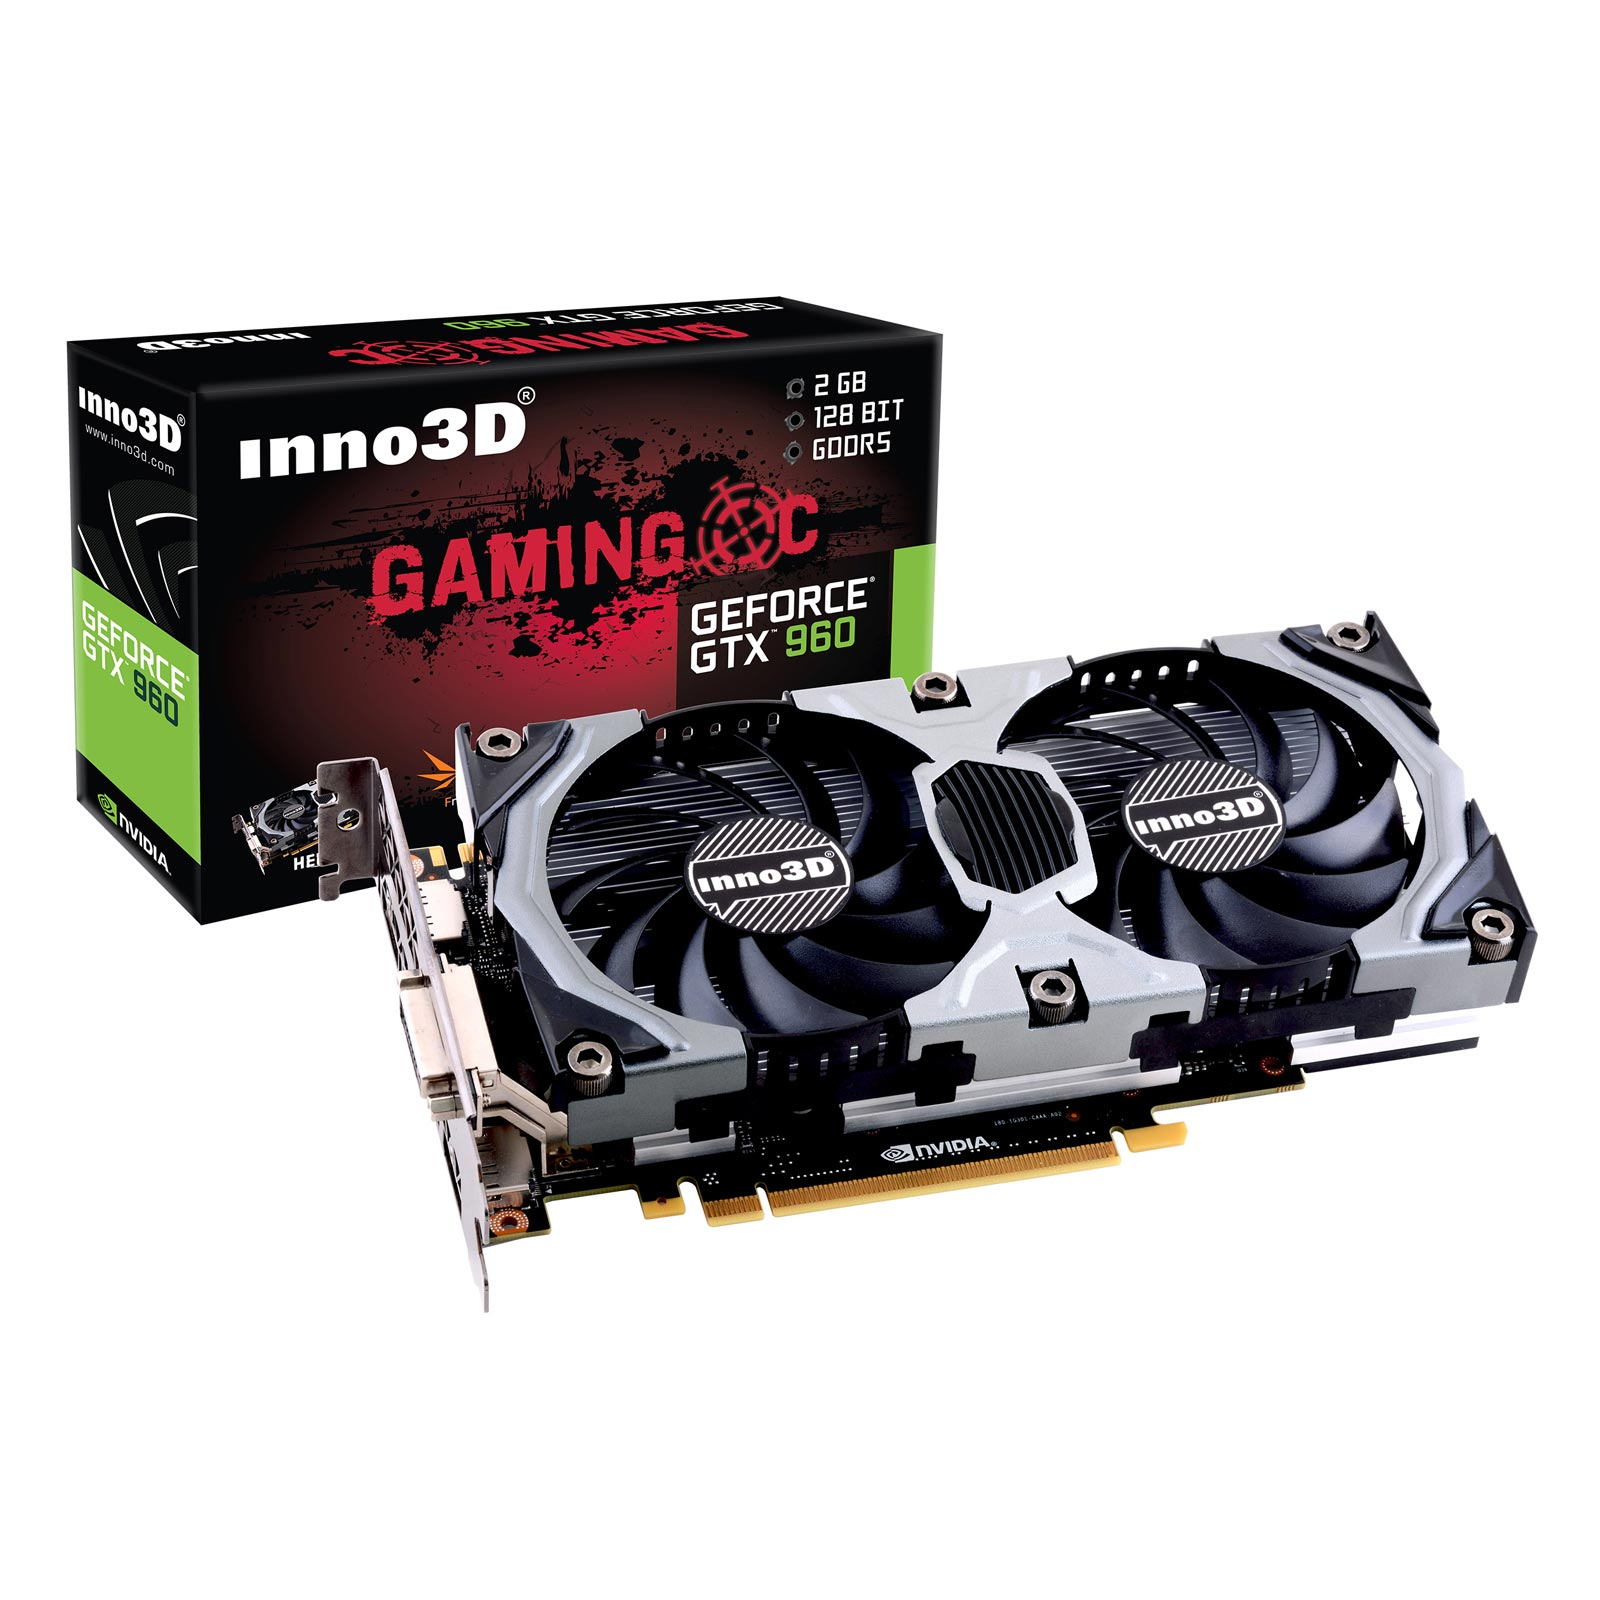 inno3d geforce gtx960 2gb oc n96l 1ddv e5cnx achat vente carte graphique sur. Black Bedroom Furniture Sets. Home Design Ideas